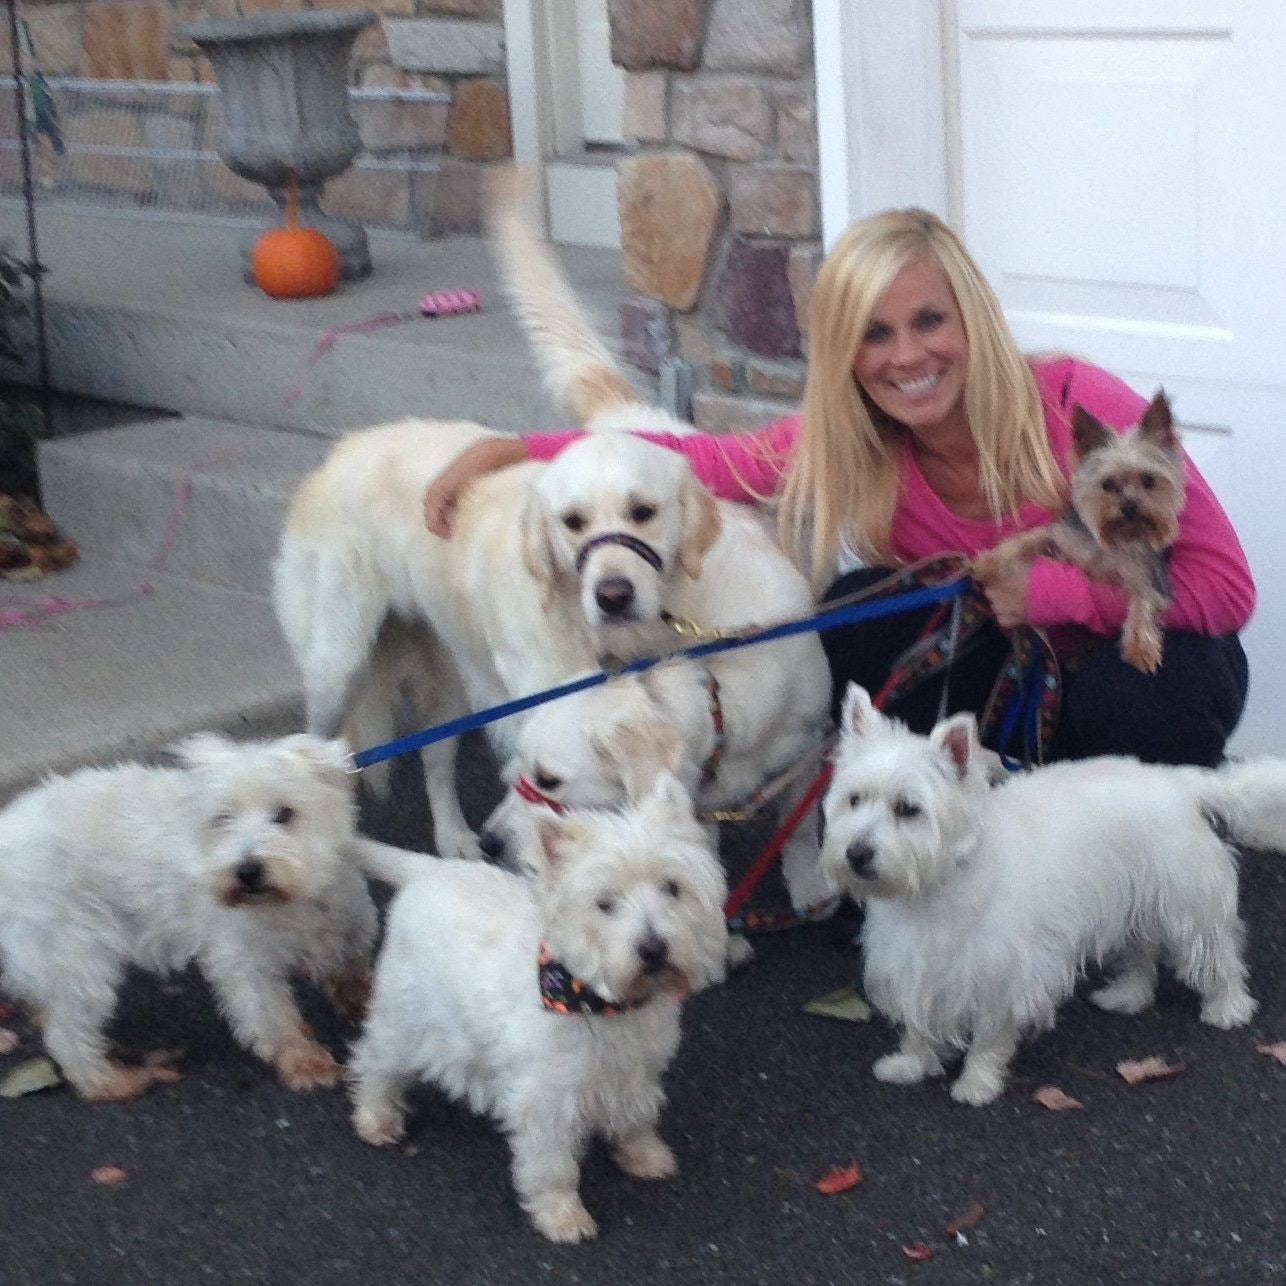 pet sitter Chrissy